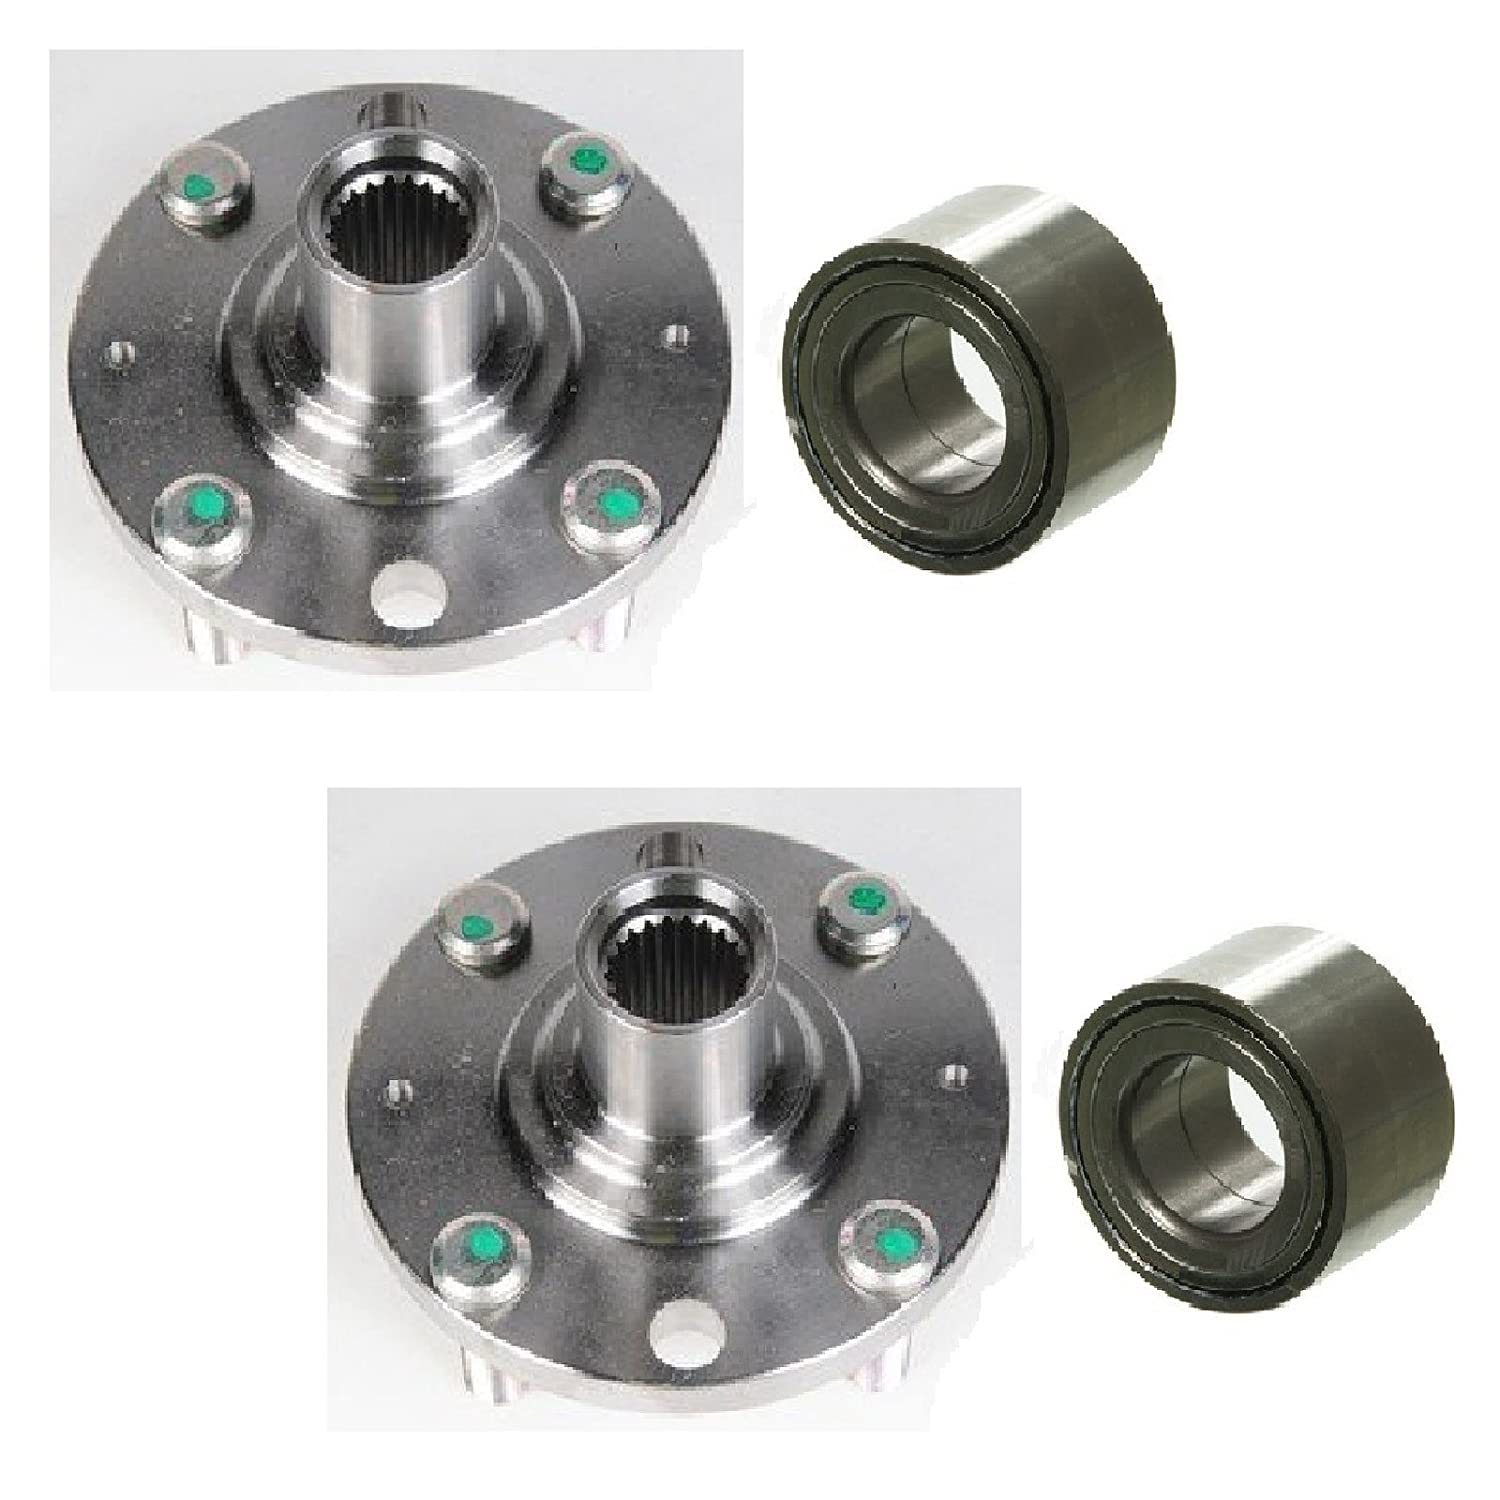 Pair Front Left And Right Wheel Hub Bearing Fit 2007 Chevy Aveo Ls Fuel Filter 2008 Chevrolet Aveo5 Automotive